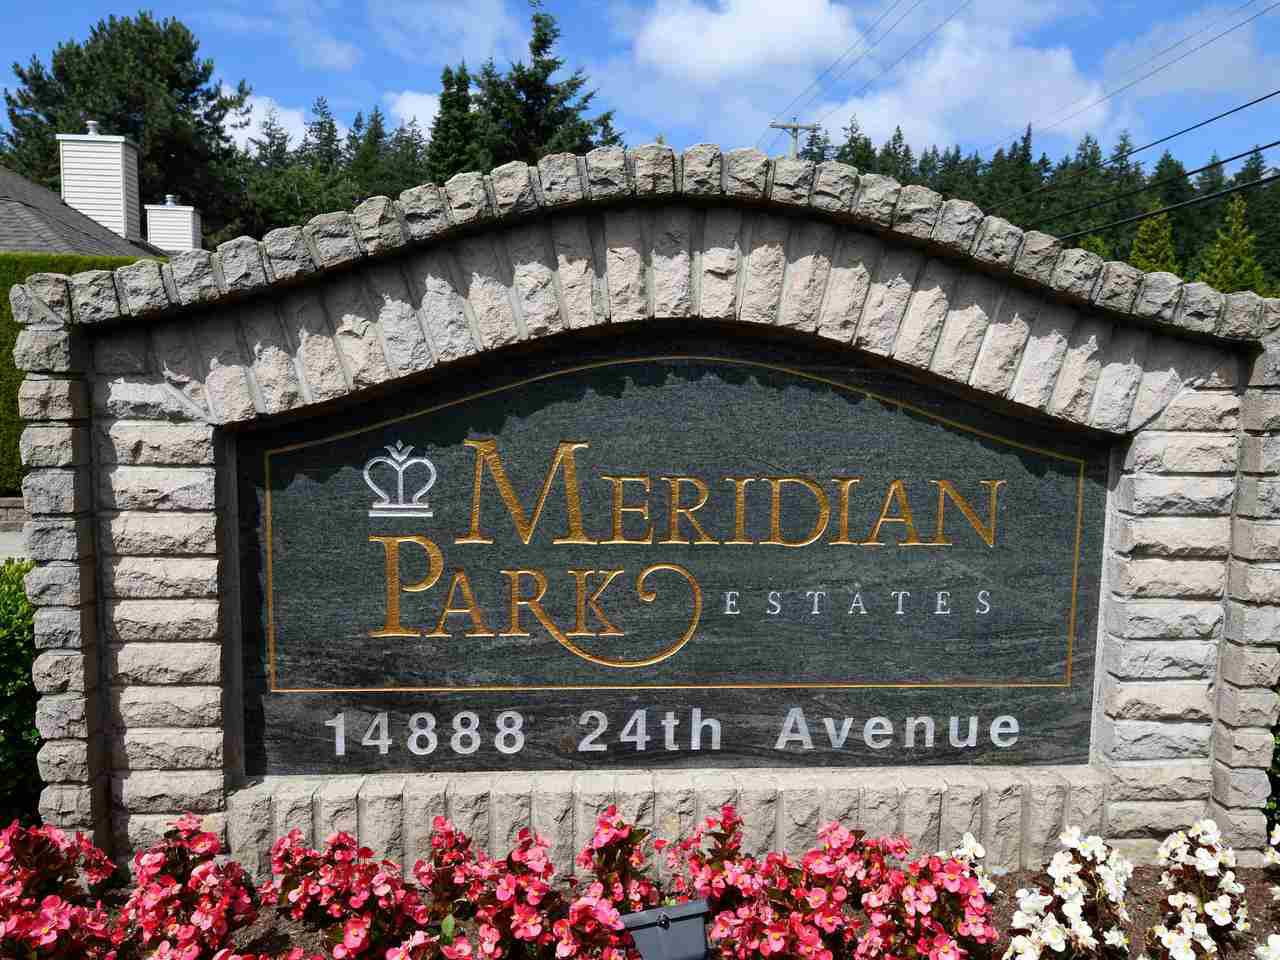 "Main Photo: 23 14888 24 Avenue in Surrey: Sunnyside Park Surrey Townhouse for sale in ""Meridian Park Estates"" (South Surrey White Rock)  : MLS®# R2381989"